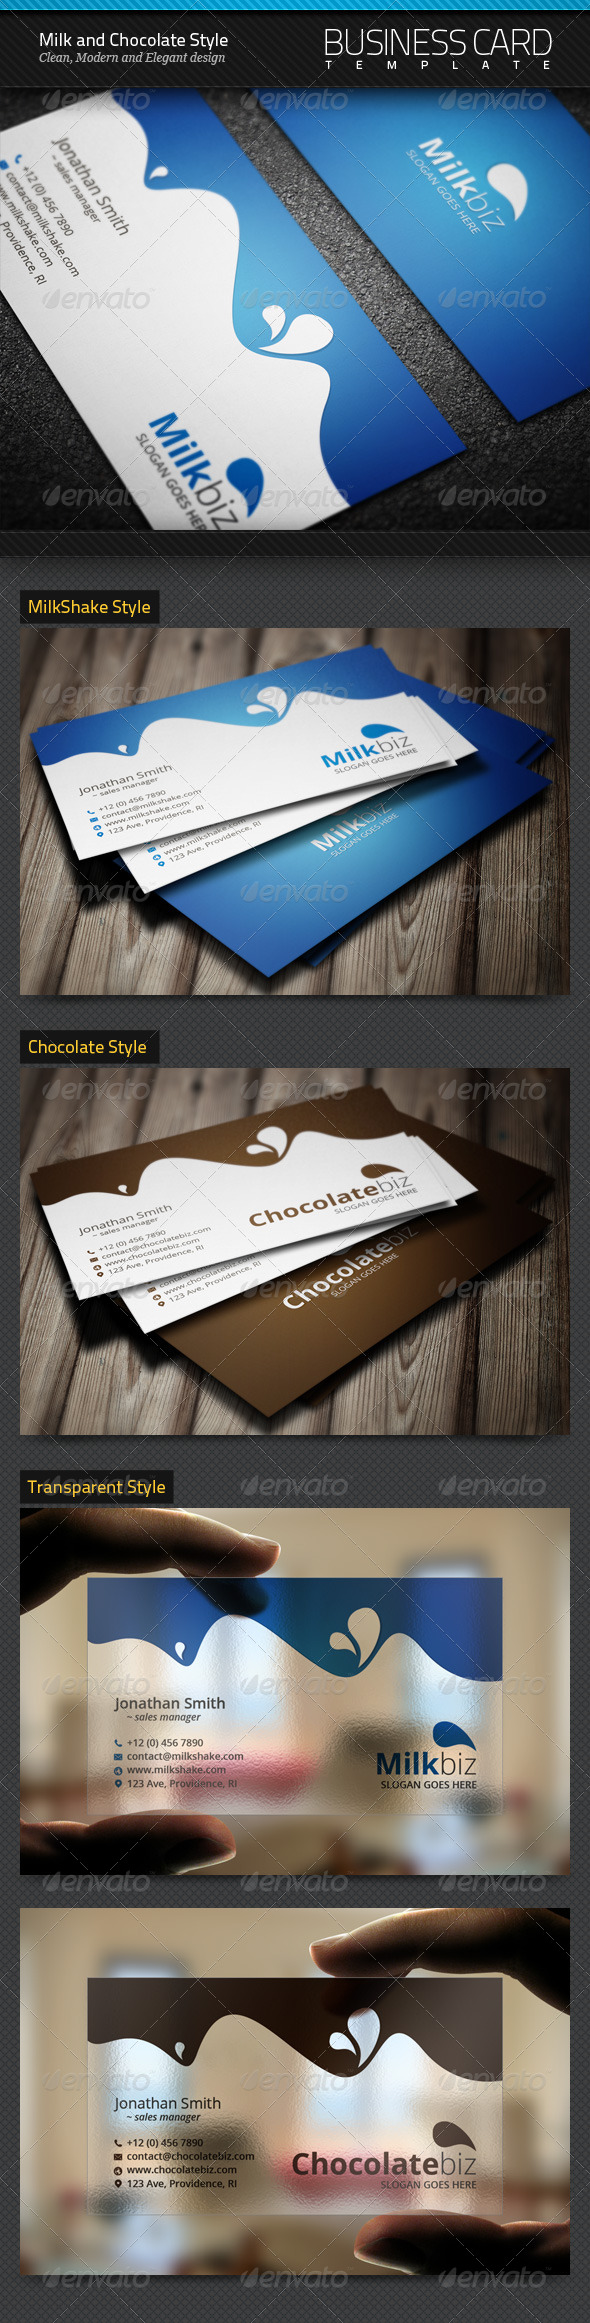 Milk and Chocolate Business Cards - Industry Specific Business Cards